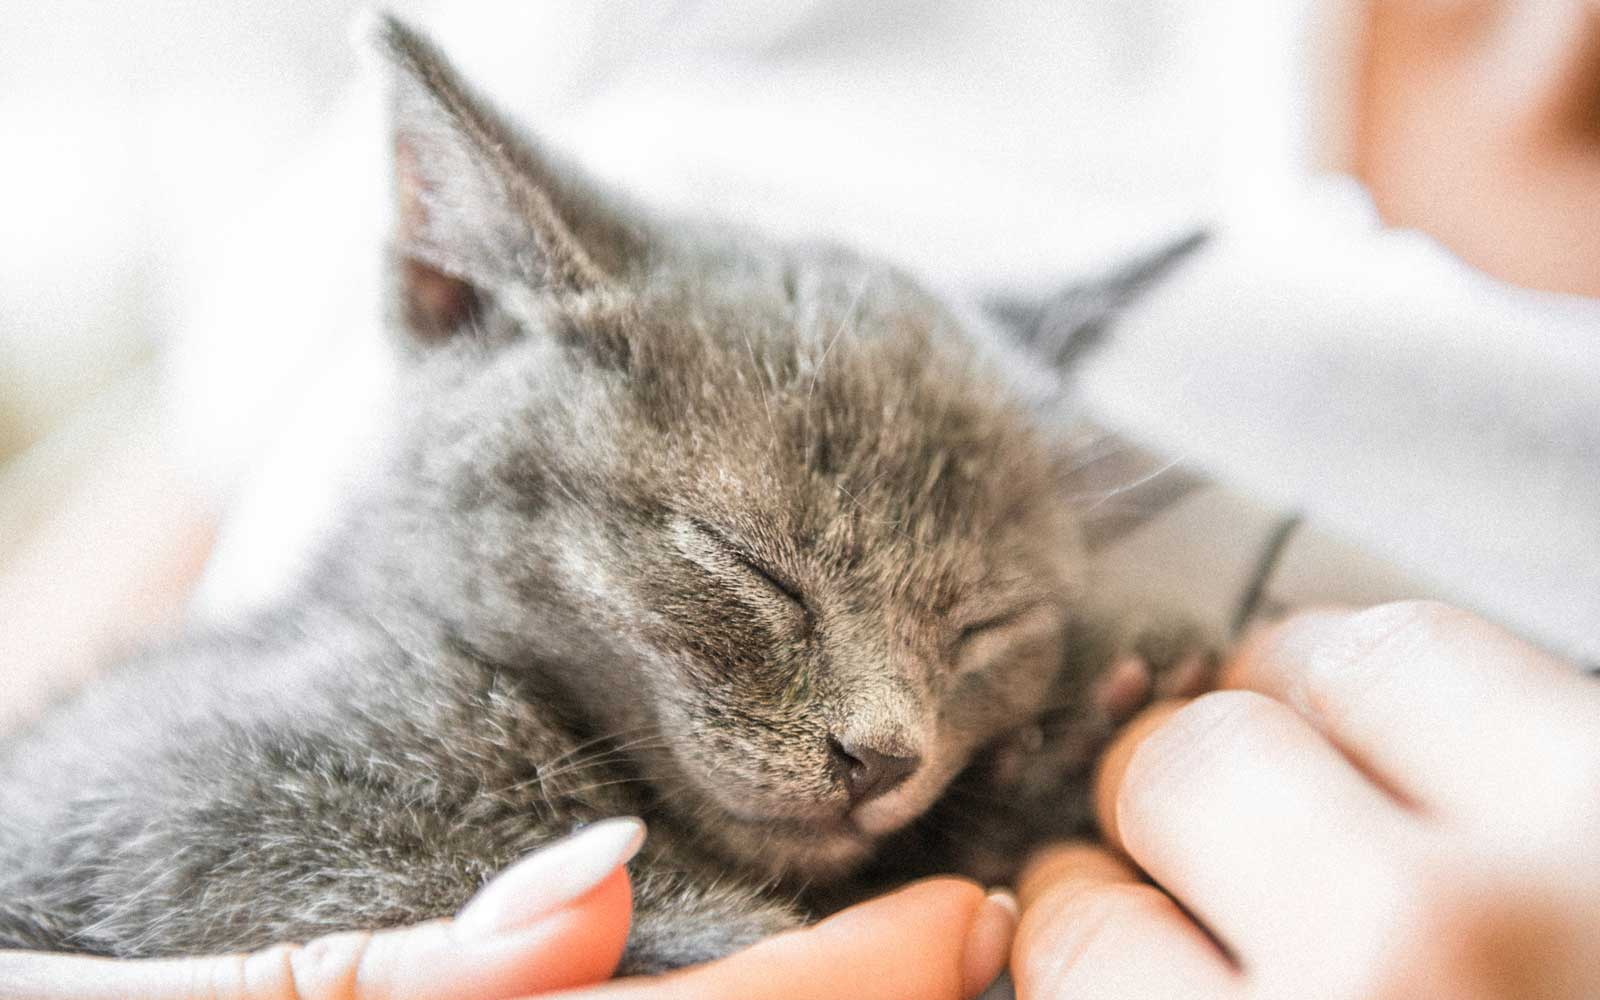 This Airport Is Treating Passengers to Comfort Kittens for Pre-flight Cuddling